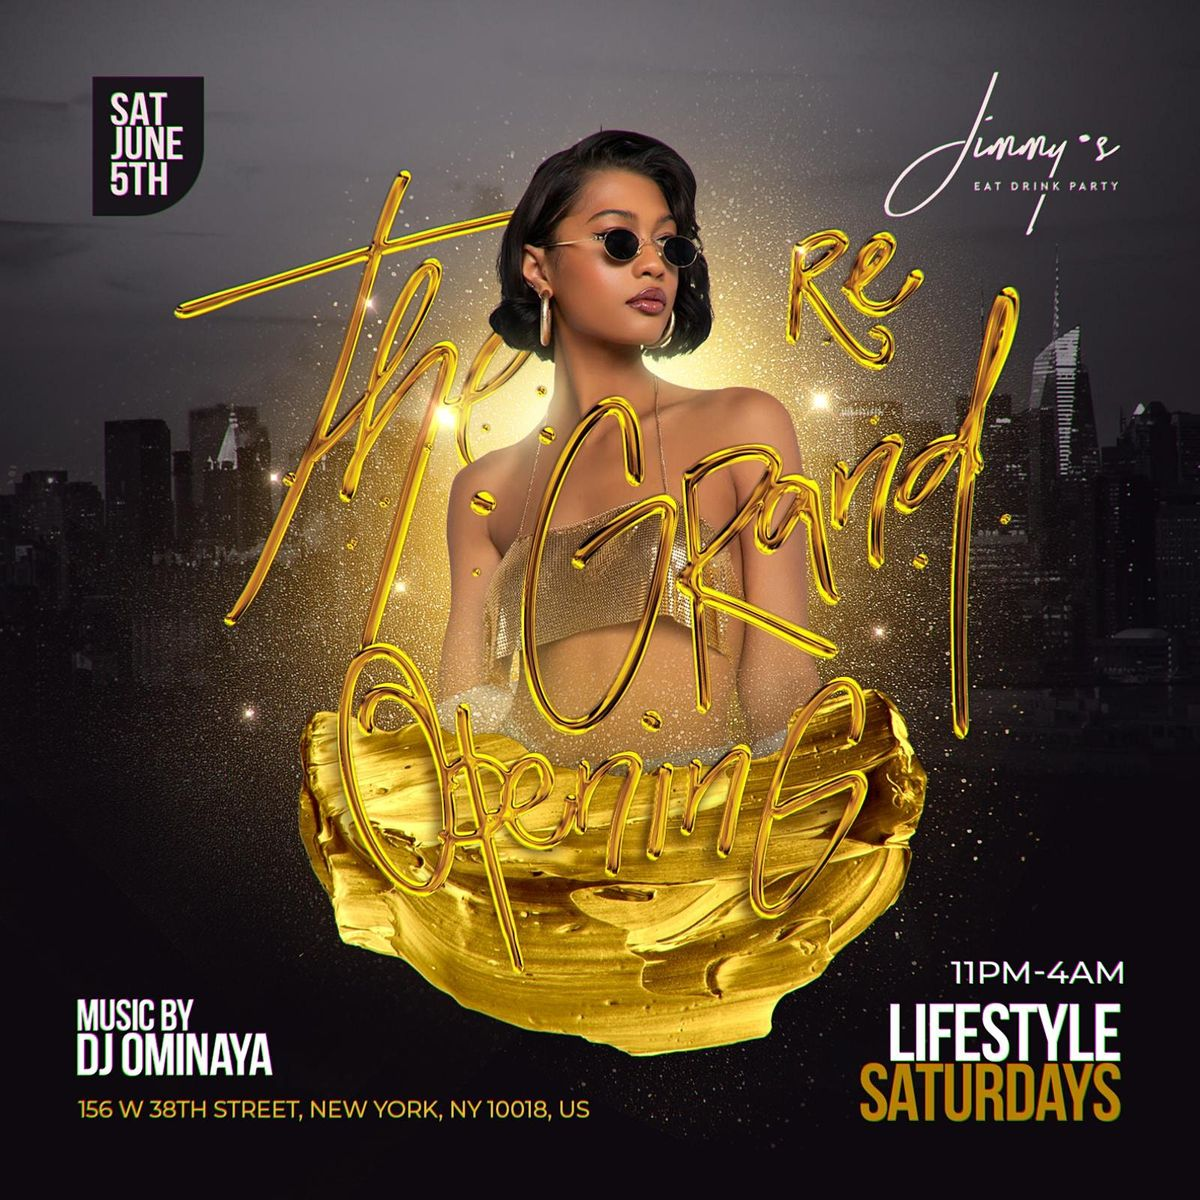 Lifestyle Saturdays At jimmys  nyc   Event in New York   AllEvents.in